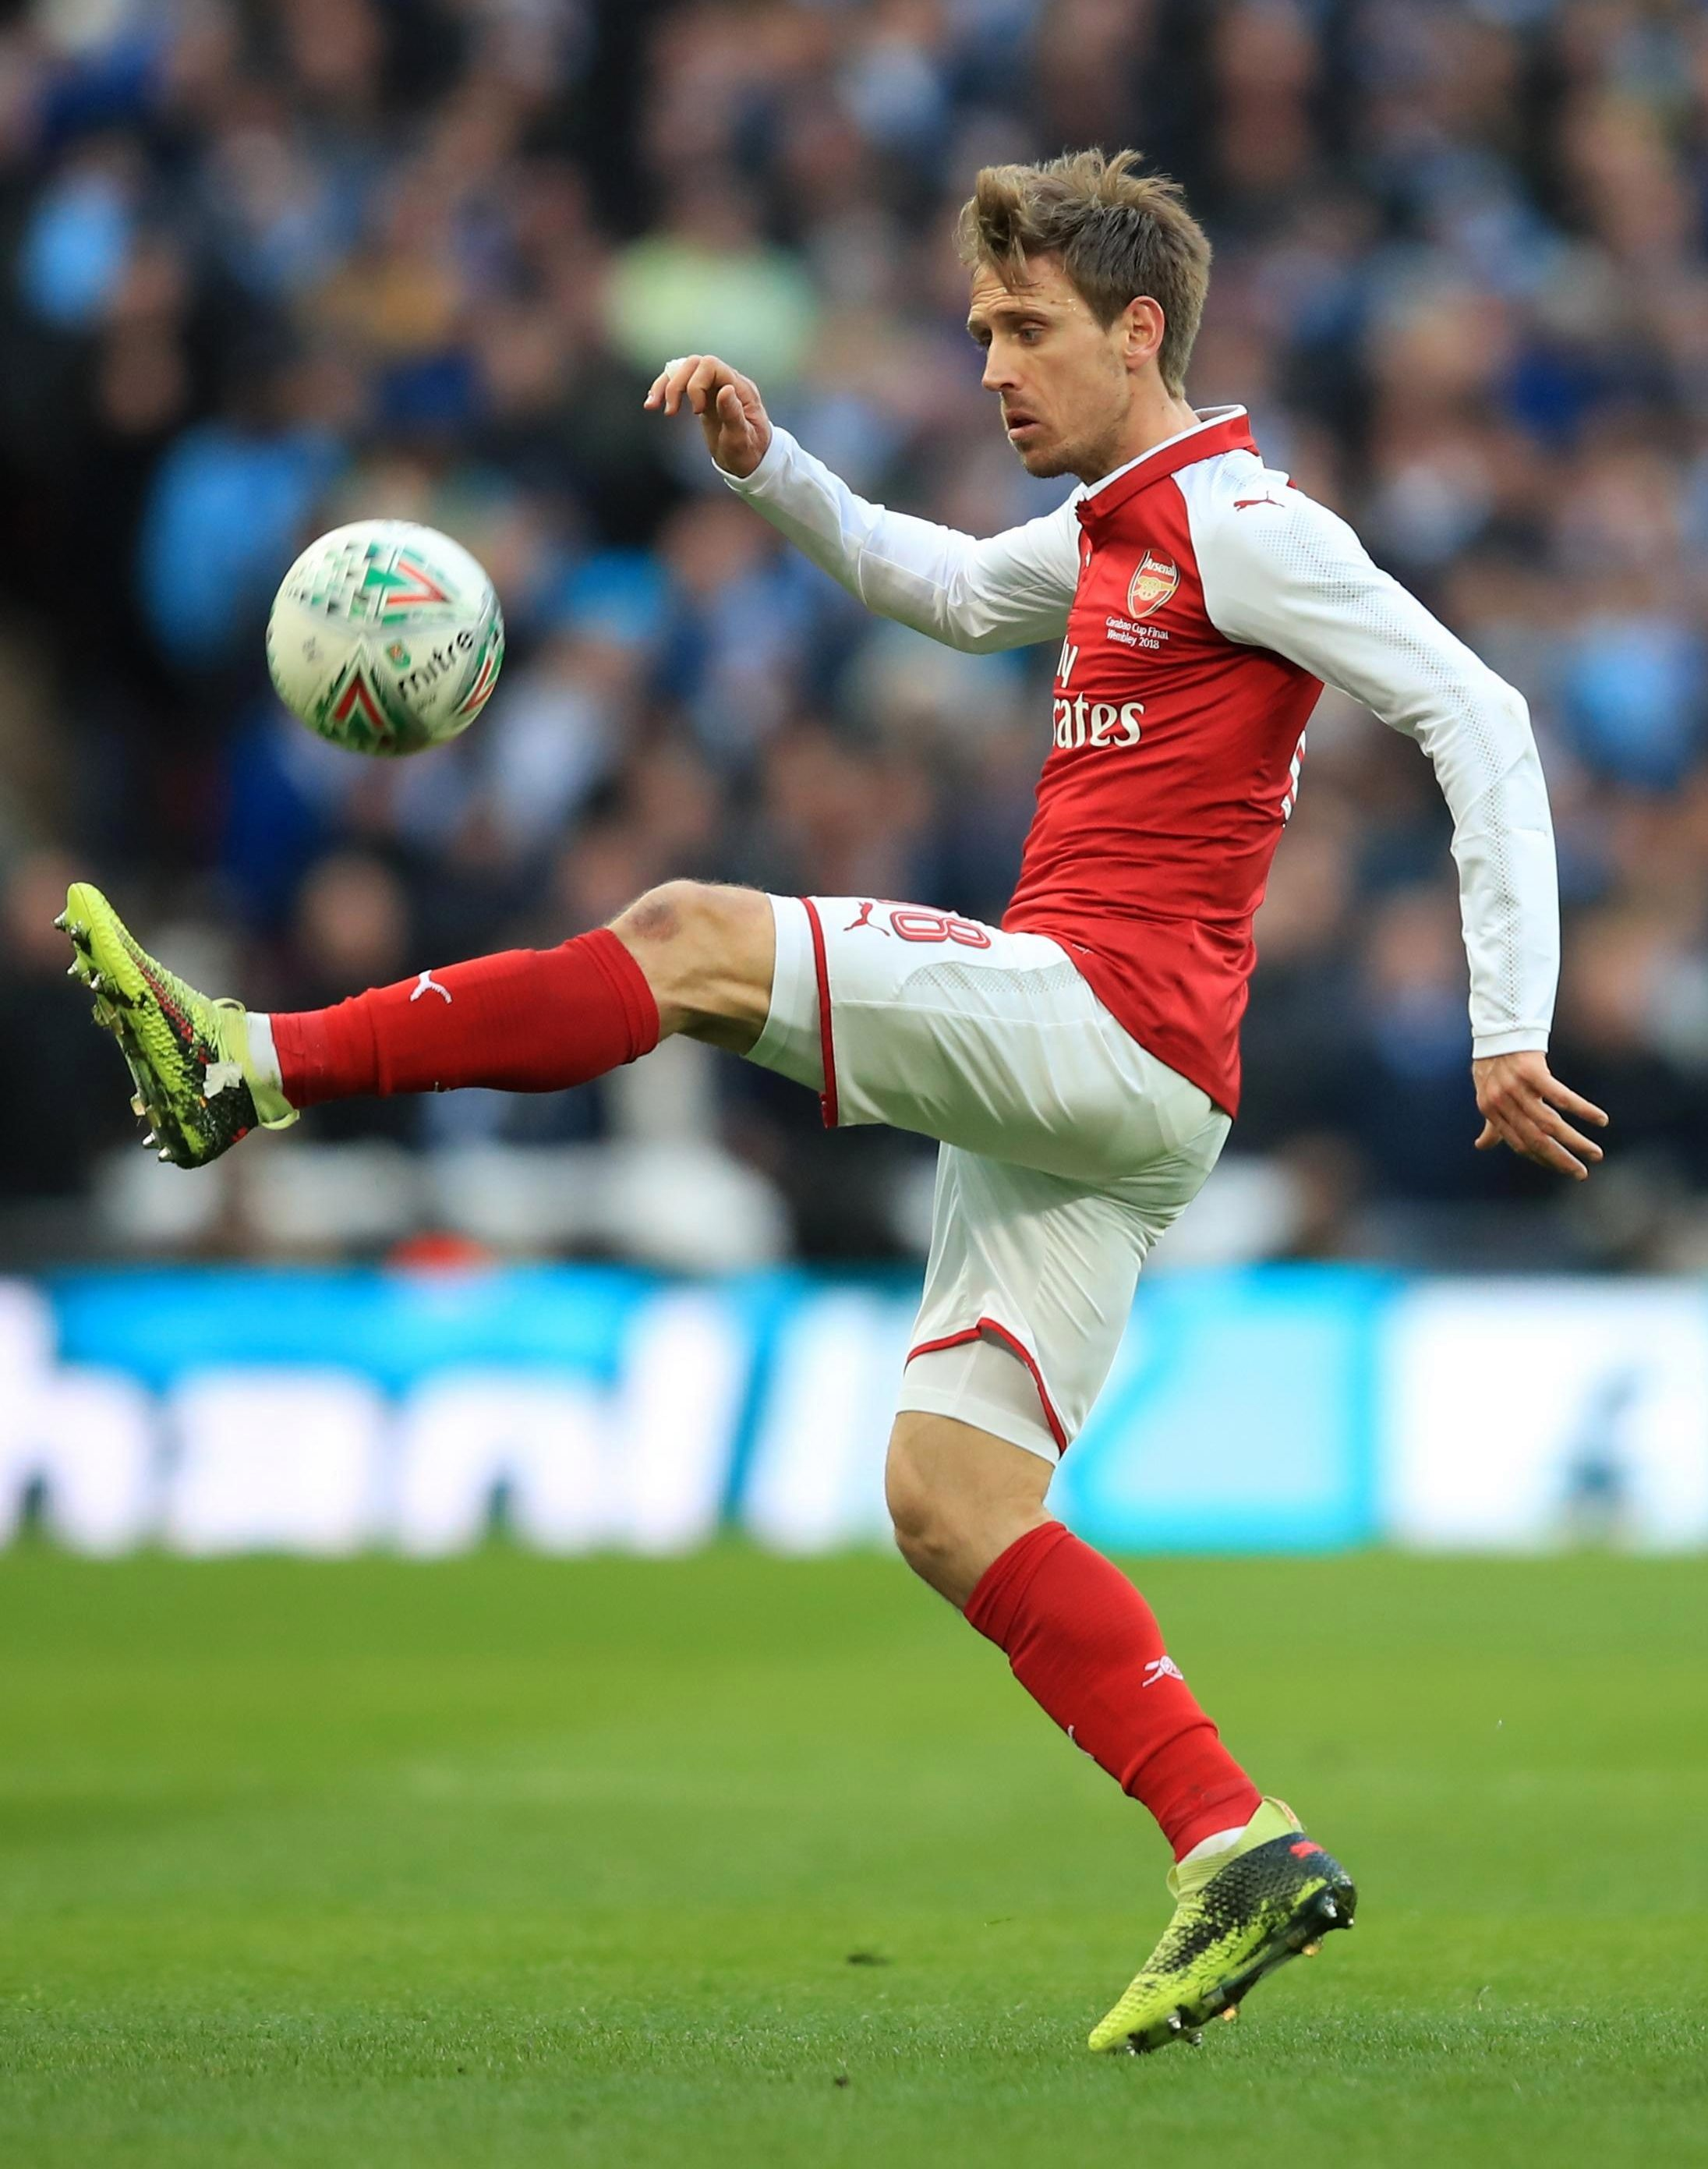 Monreal can be proud of his efforts this season